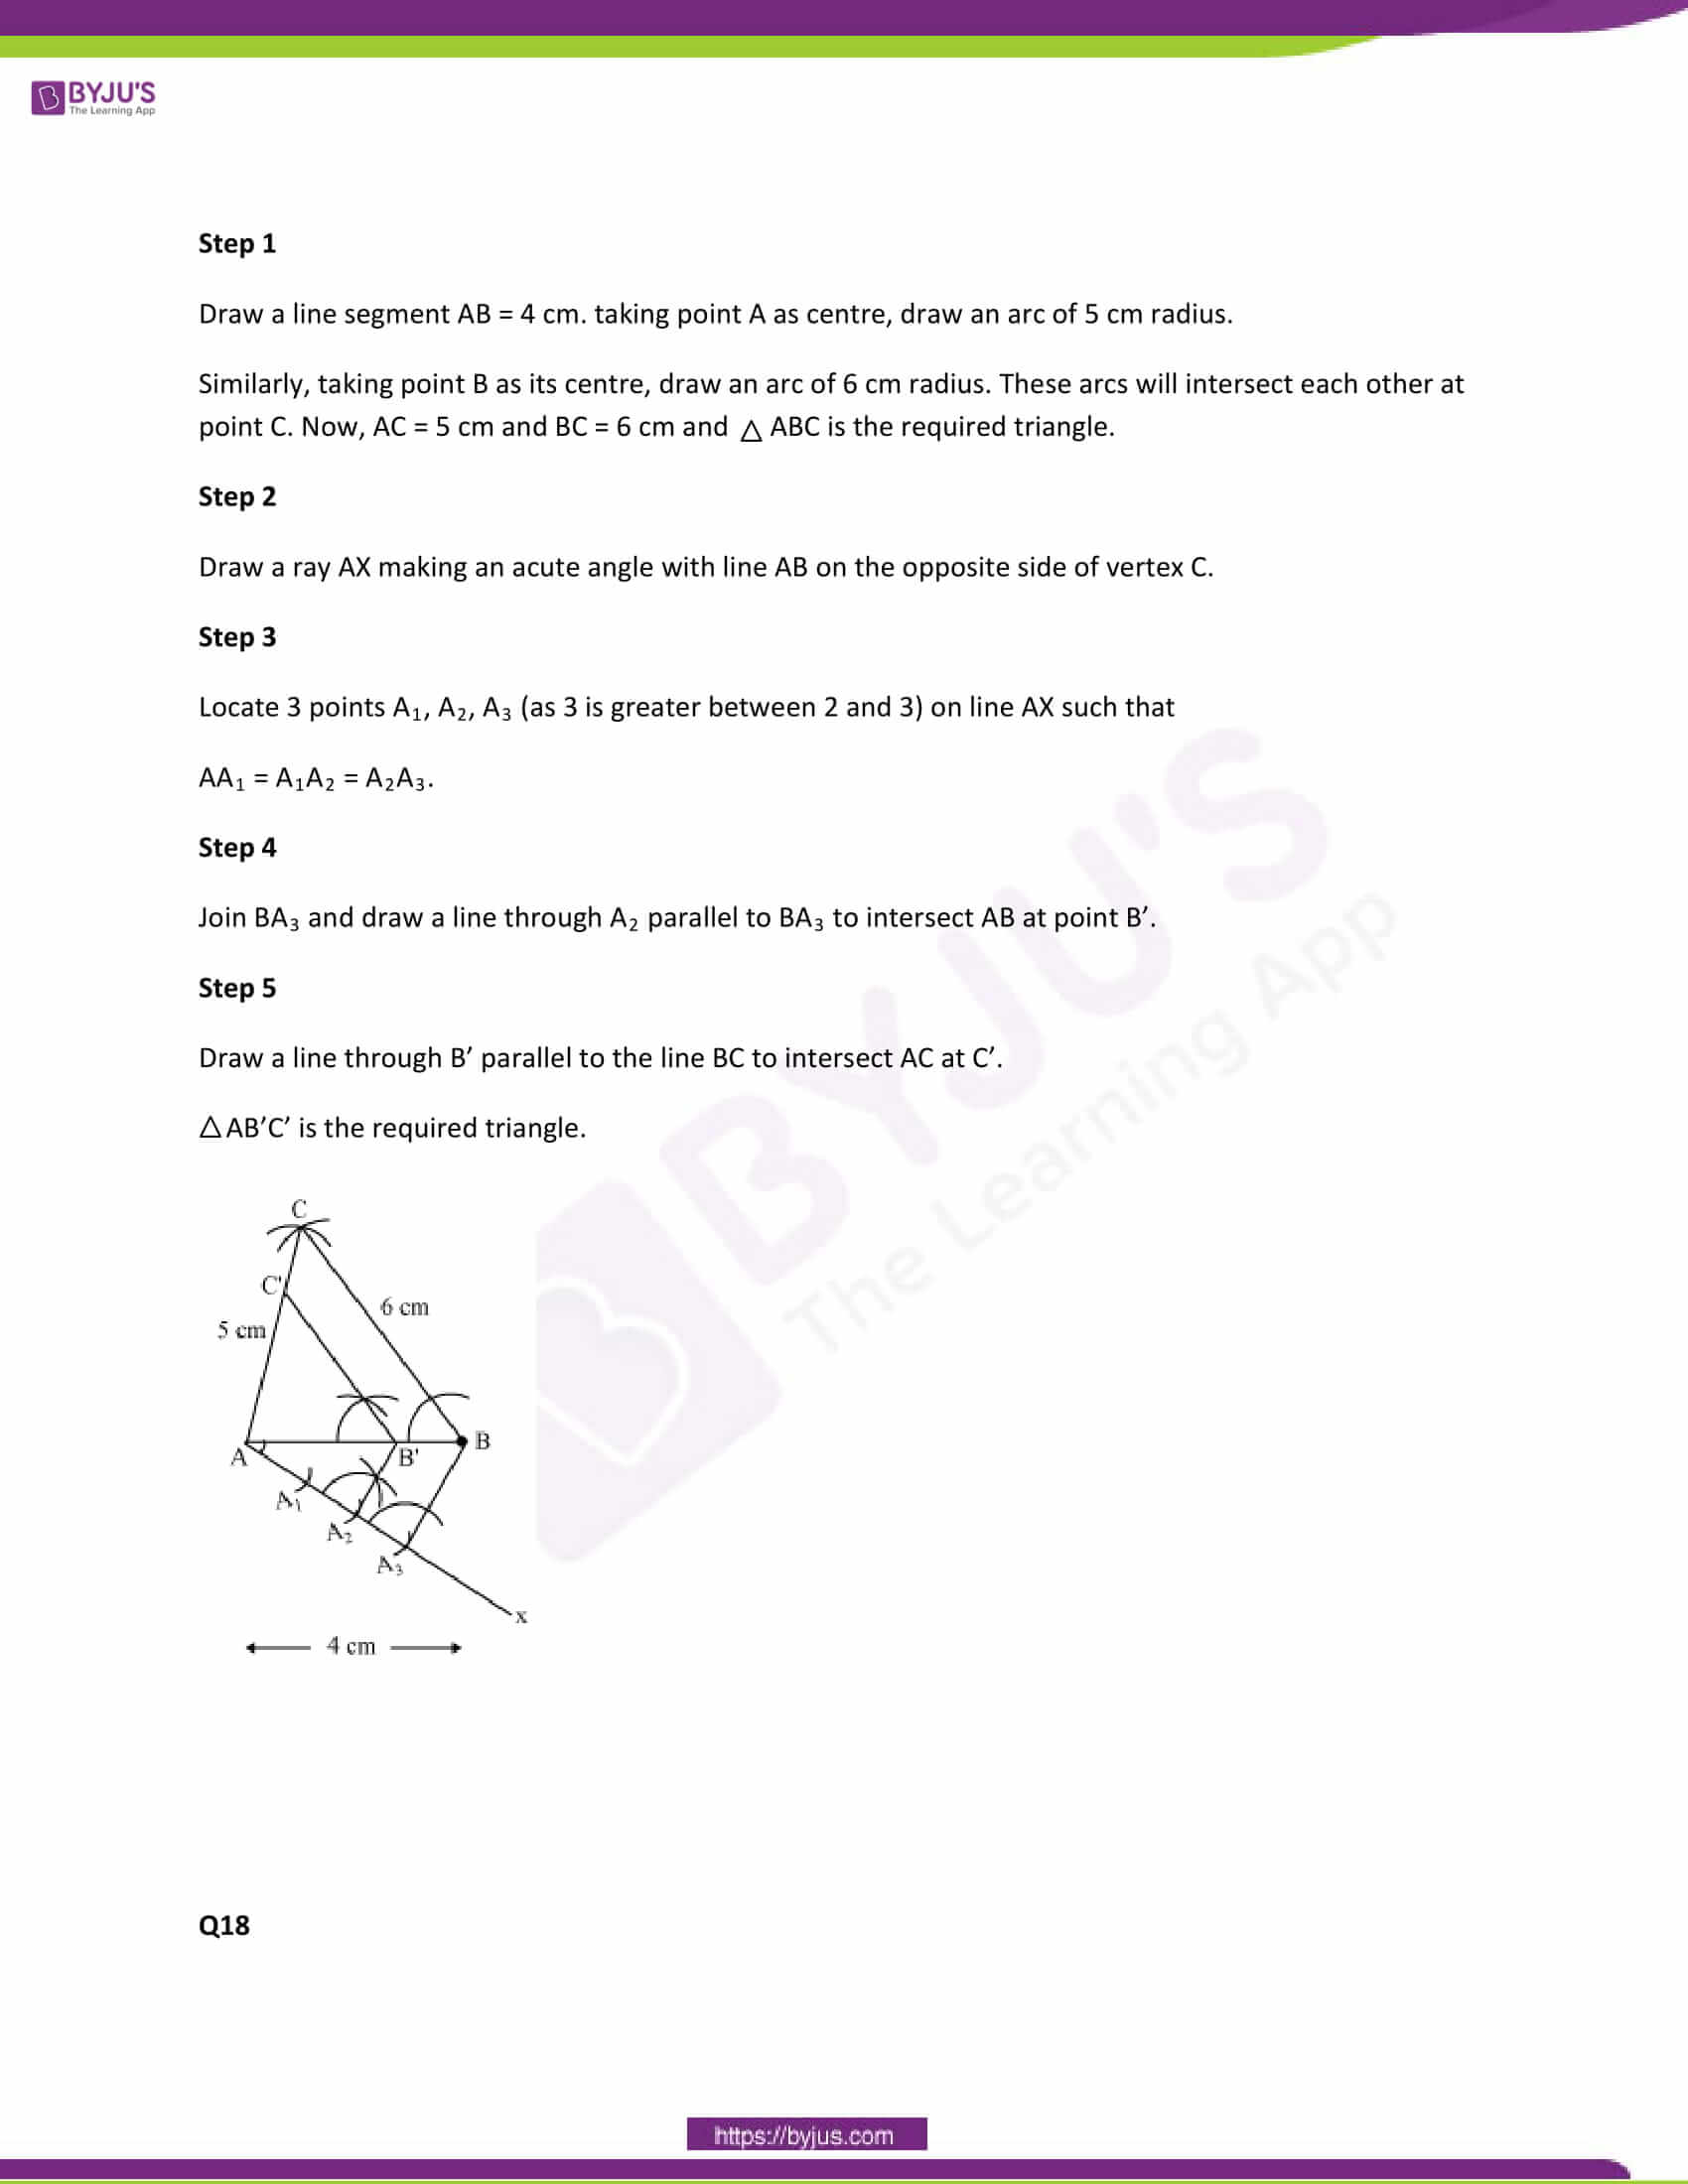 CBSE Class 10 Maths Papers Solution 2013 09